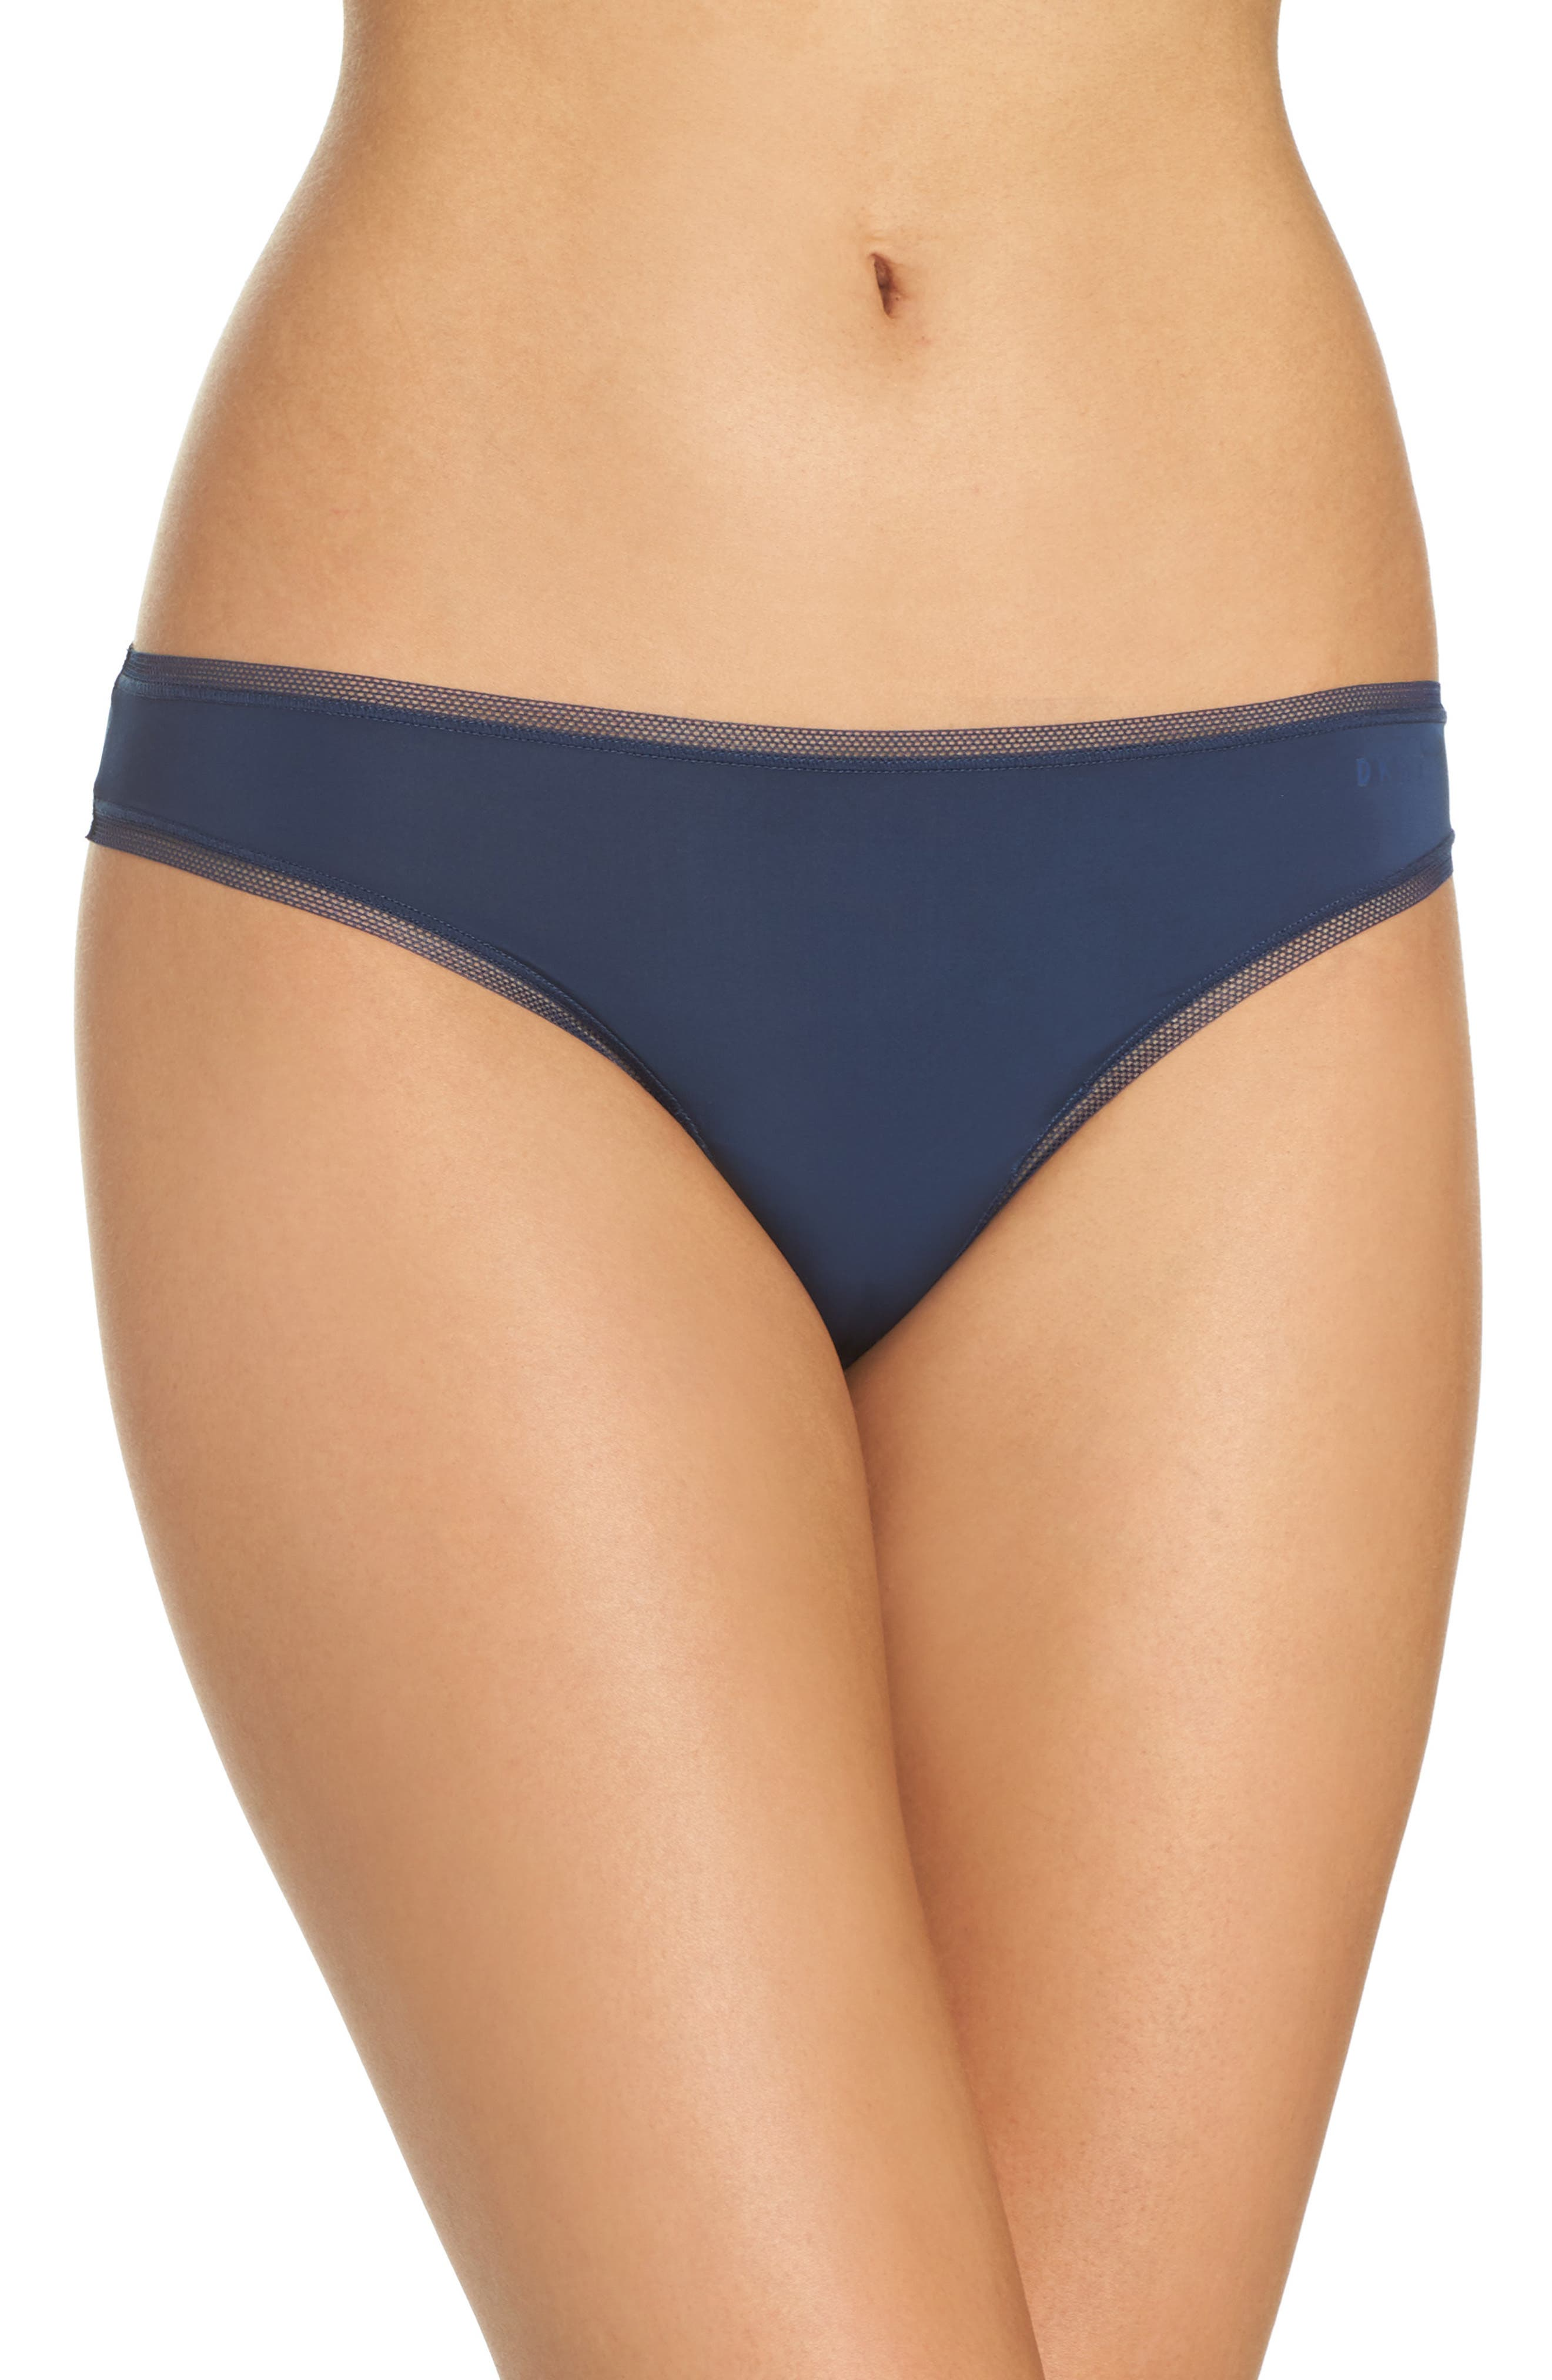 Alternate Image 1 Selected - DKNY Low Rise Thong (3 for $33)